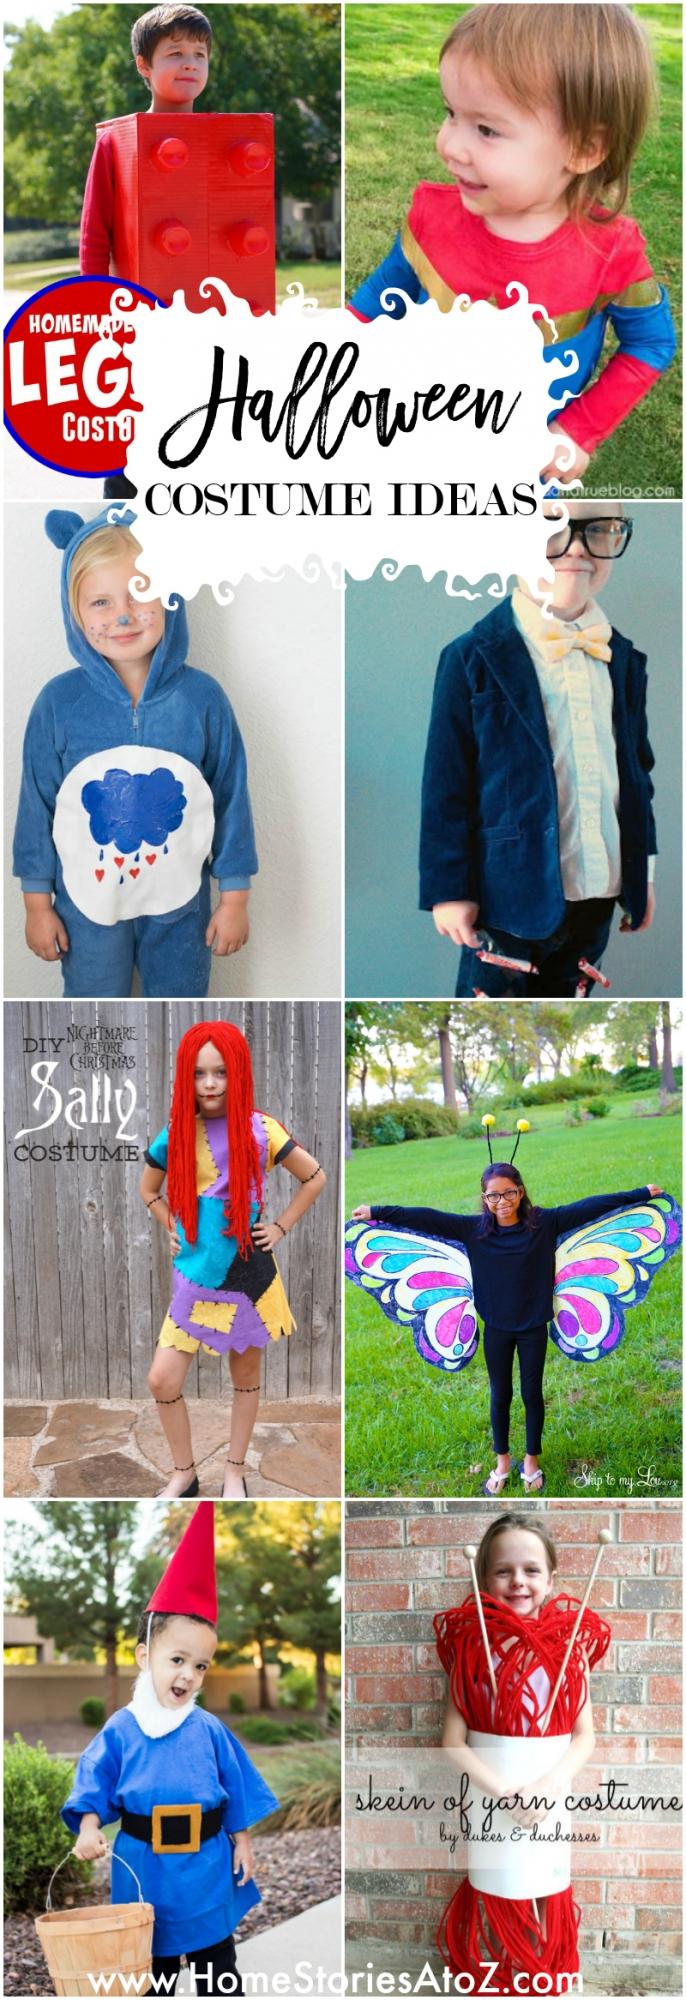 Christmas Halloween Costume Ideas.100 Halloween Ideas Costumes Treats Decor And More